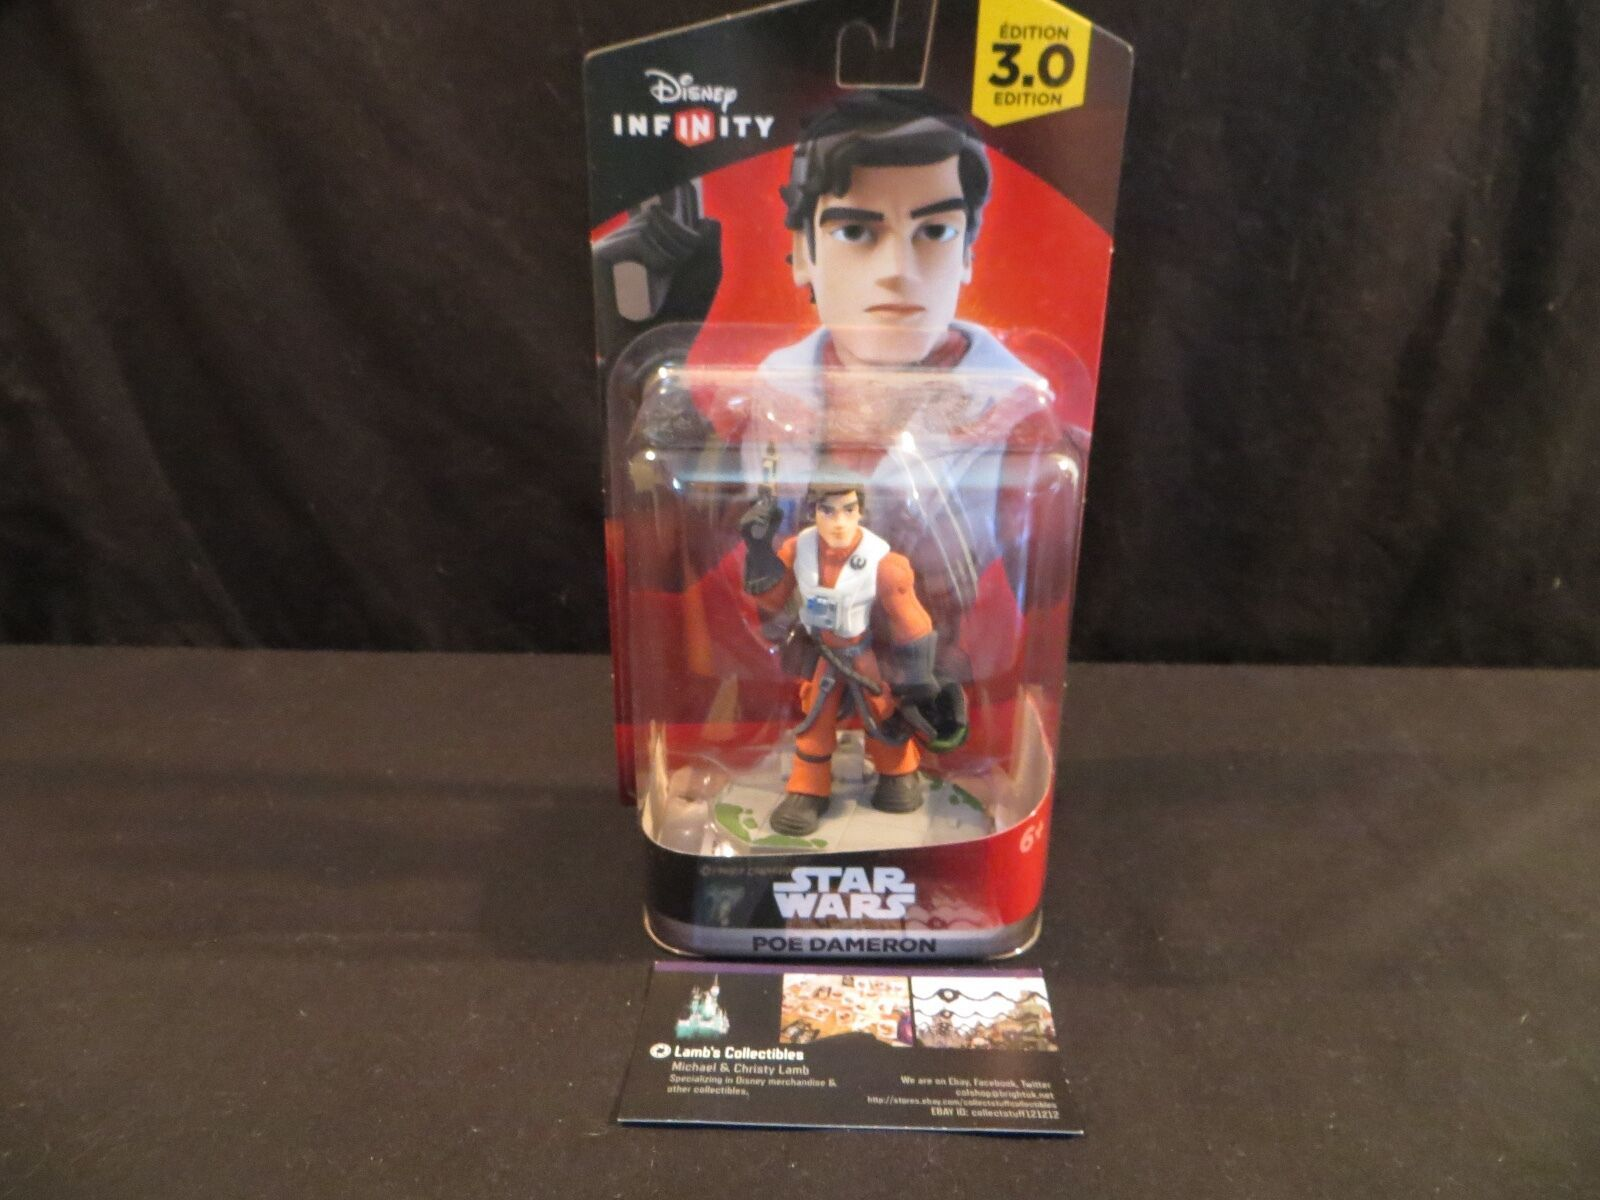 Primary image for Poe Dameron Disney Infinity 3.0 Star Wars The Force Awakens action Figure